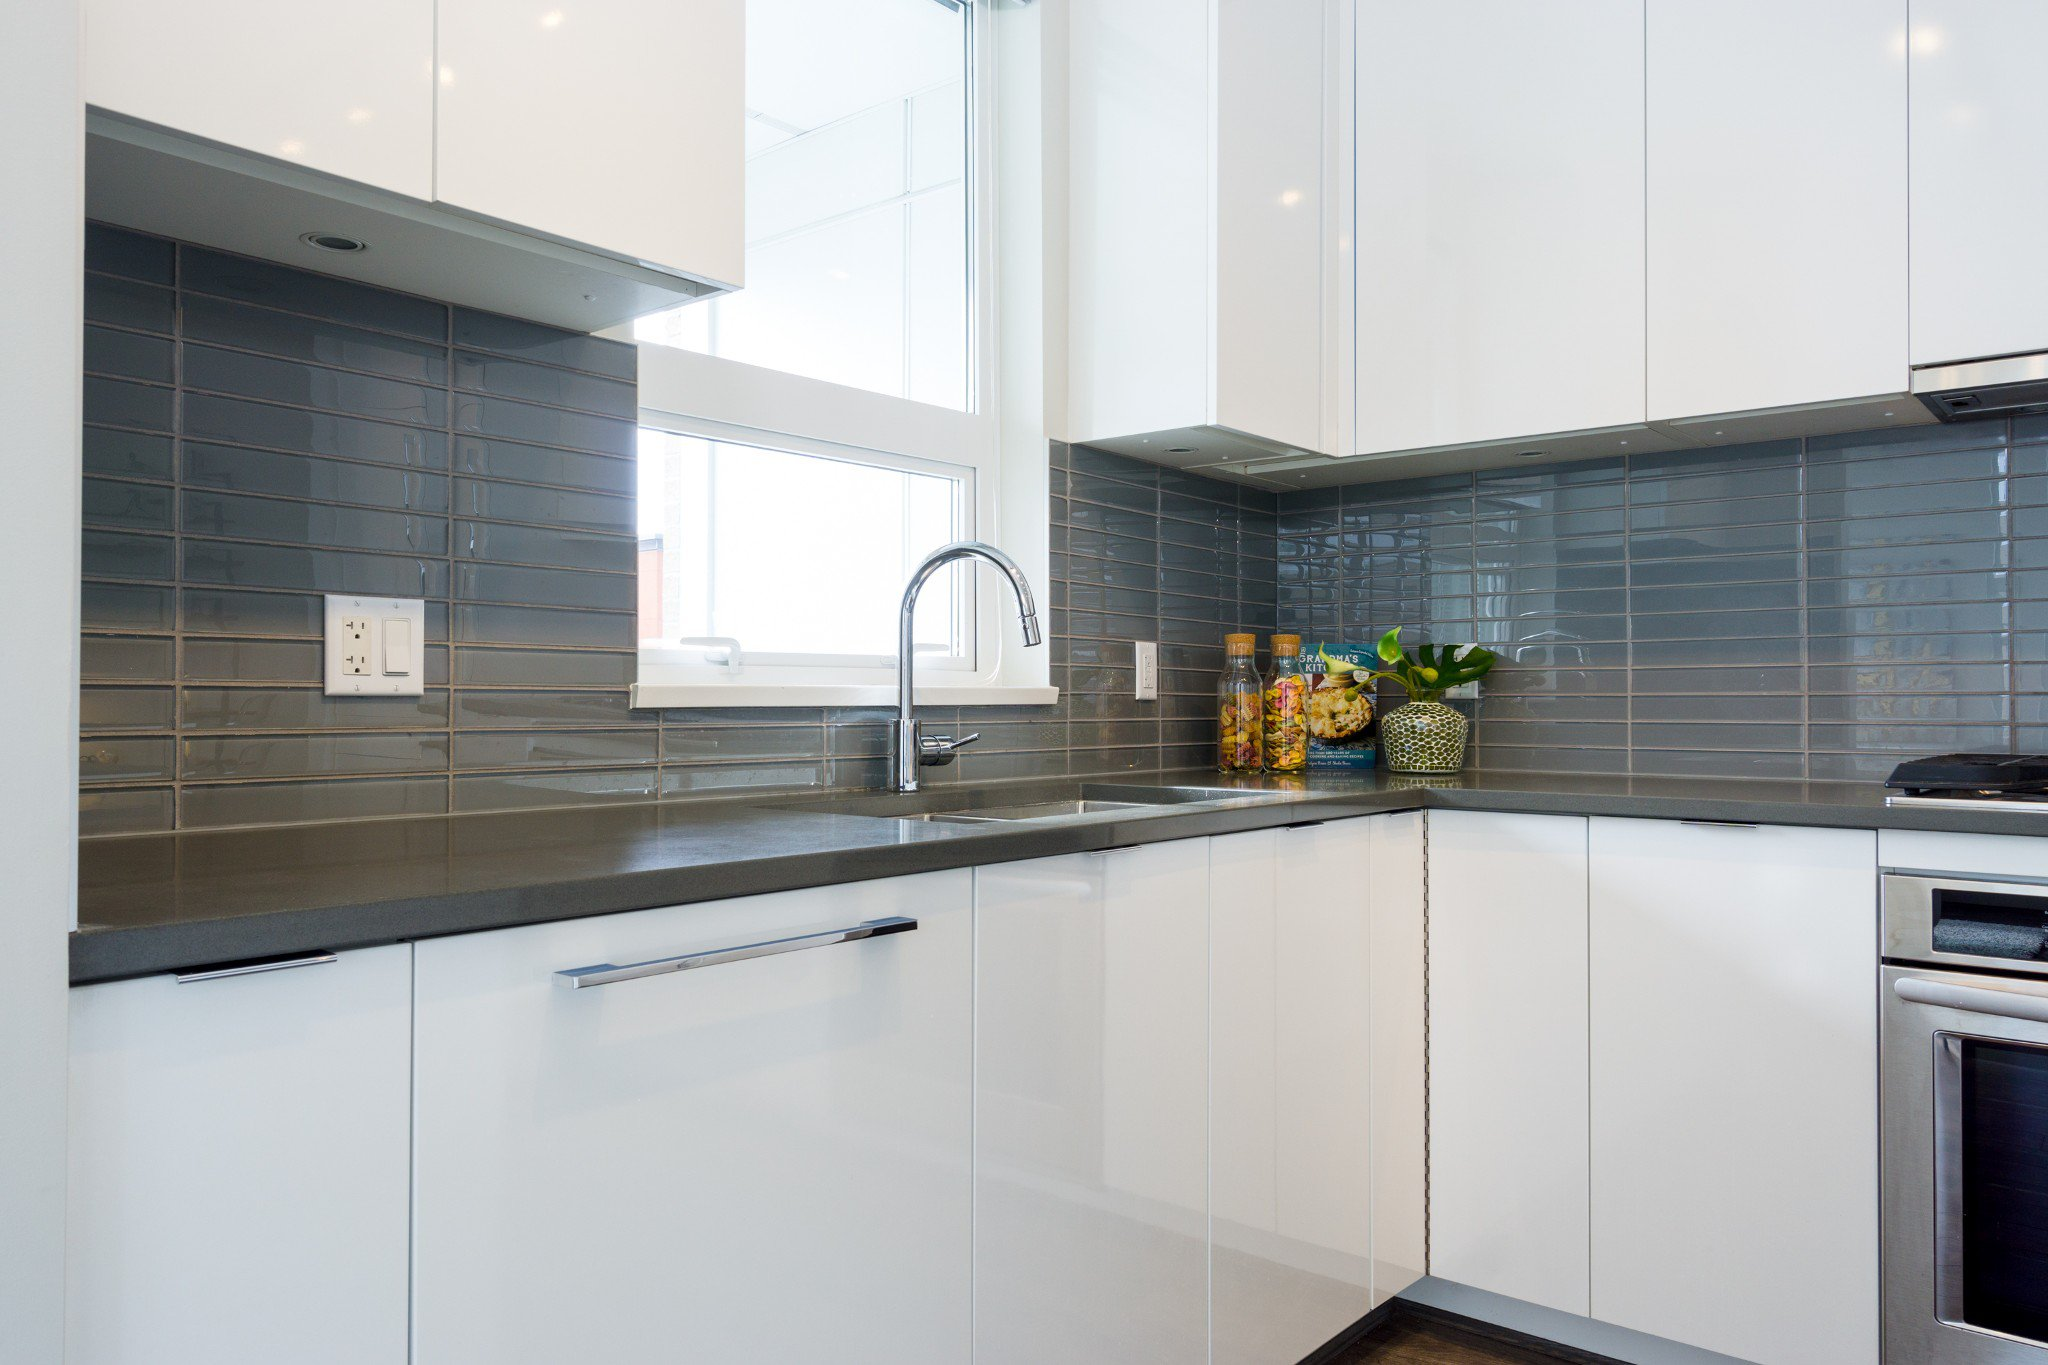 """Photo 7: Photos: 303 9311 ALEXANDRA Road in Richmond: West Cambie Condo for sale in """"ALEXANDRA COURT"""" : MLS®# R2347629"""